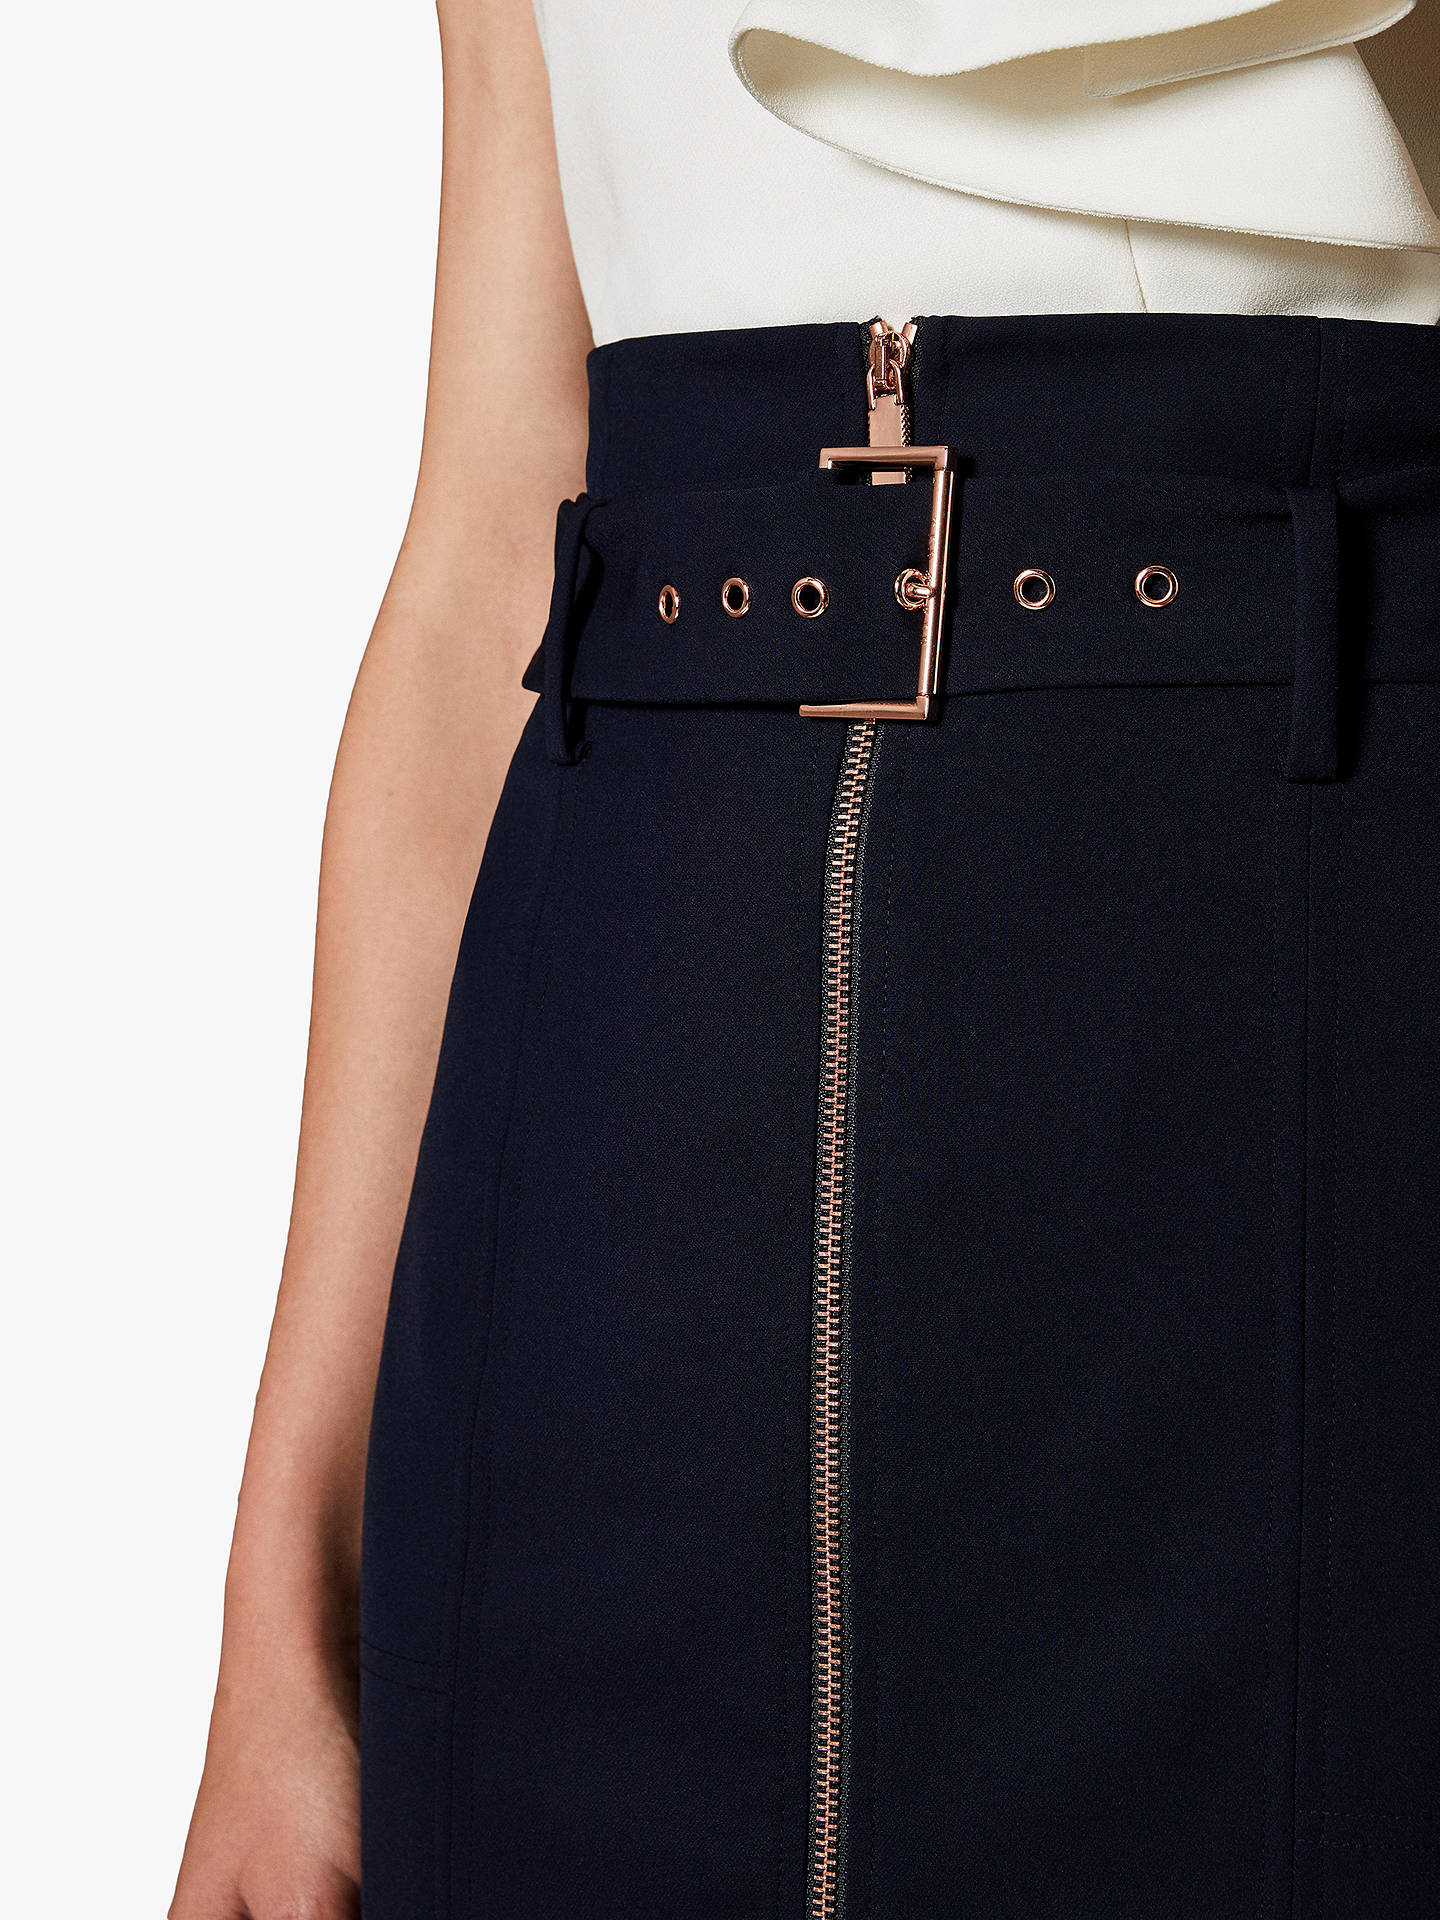 BuyTed Baker Kaara Top Stitch Pencil Skirt, Blue Navy, 1 Online at johnlewis.com